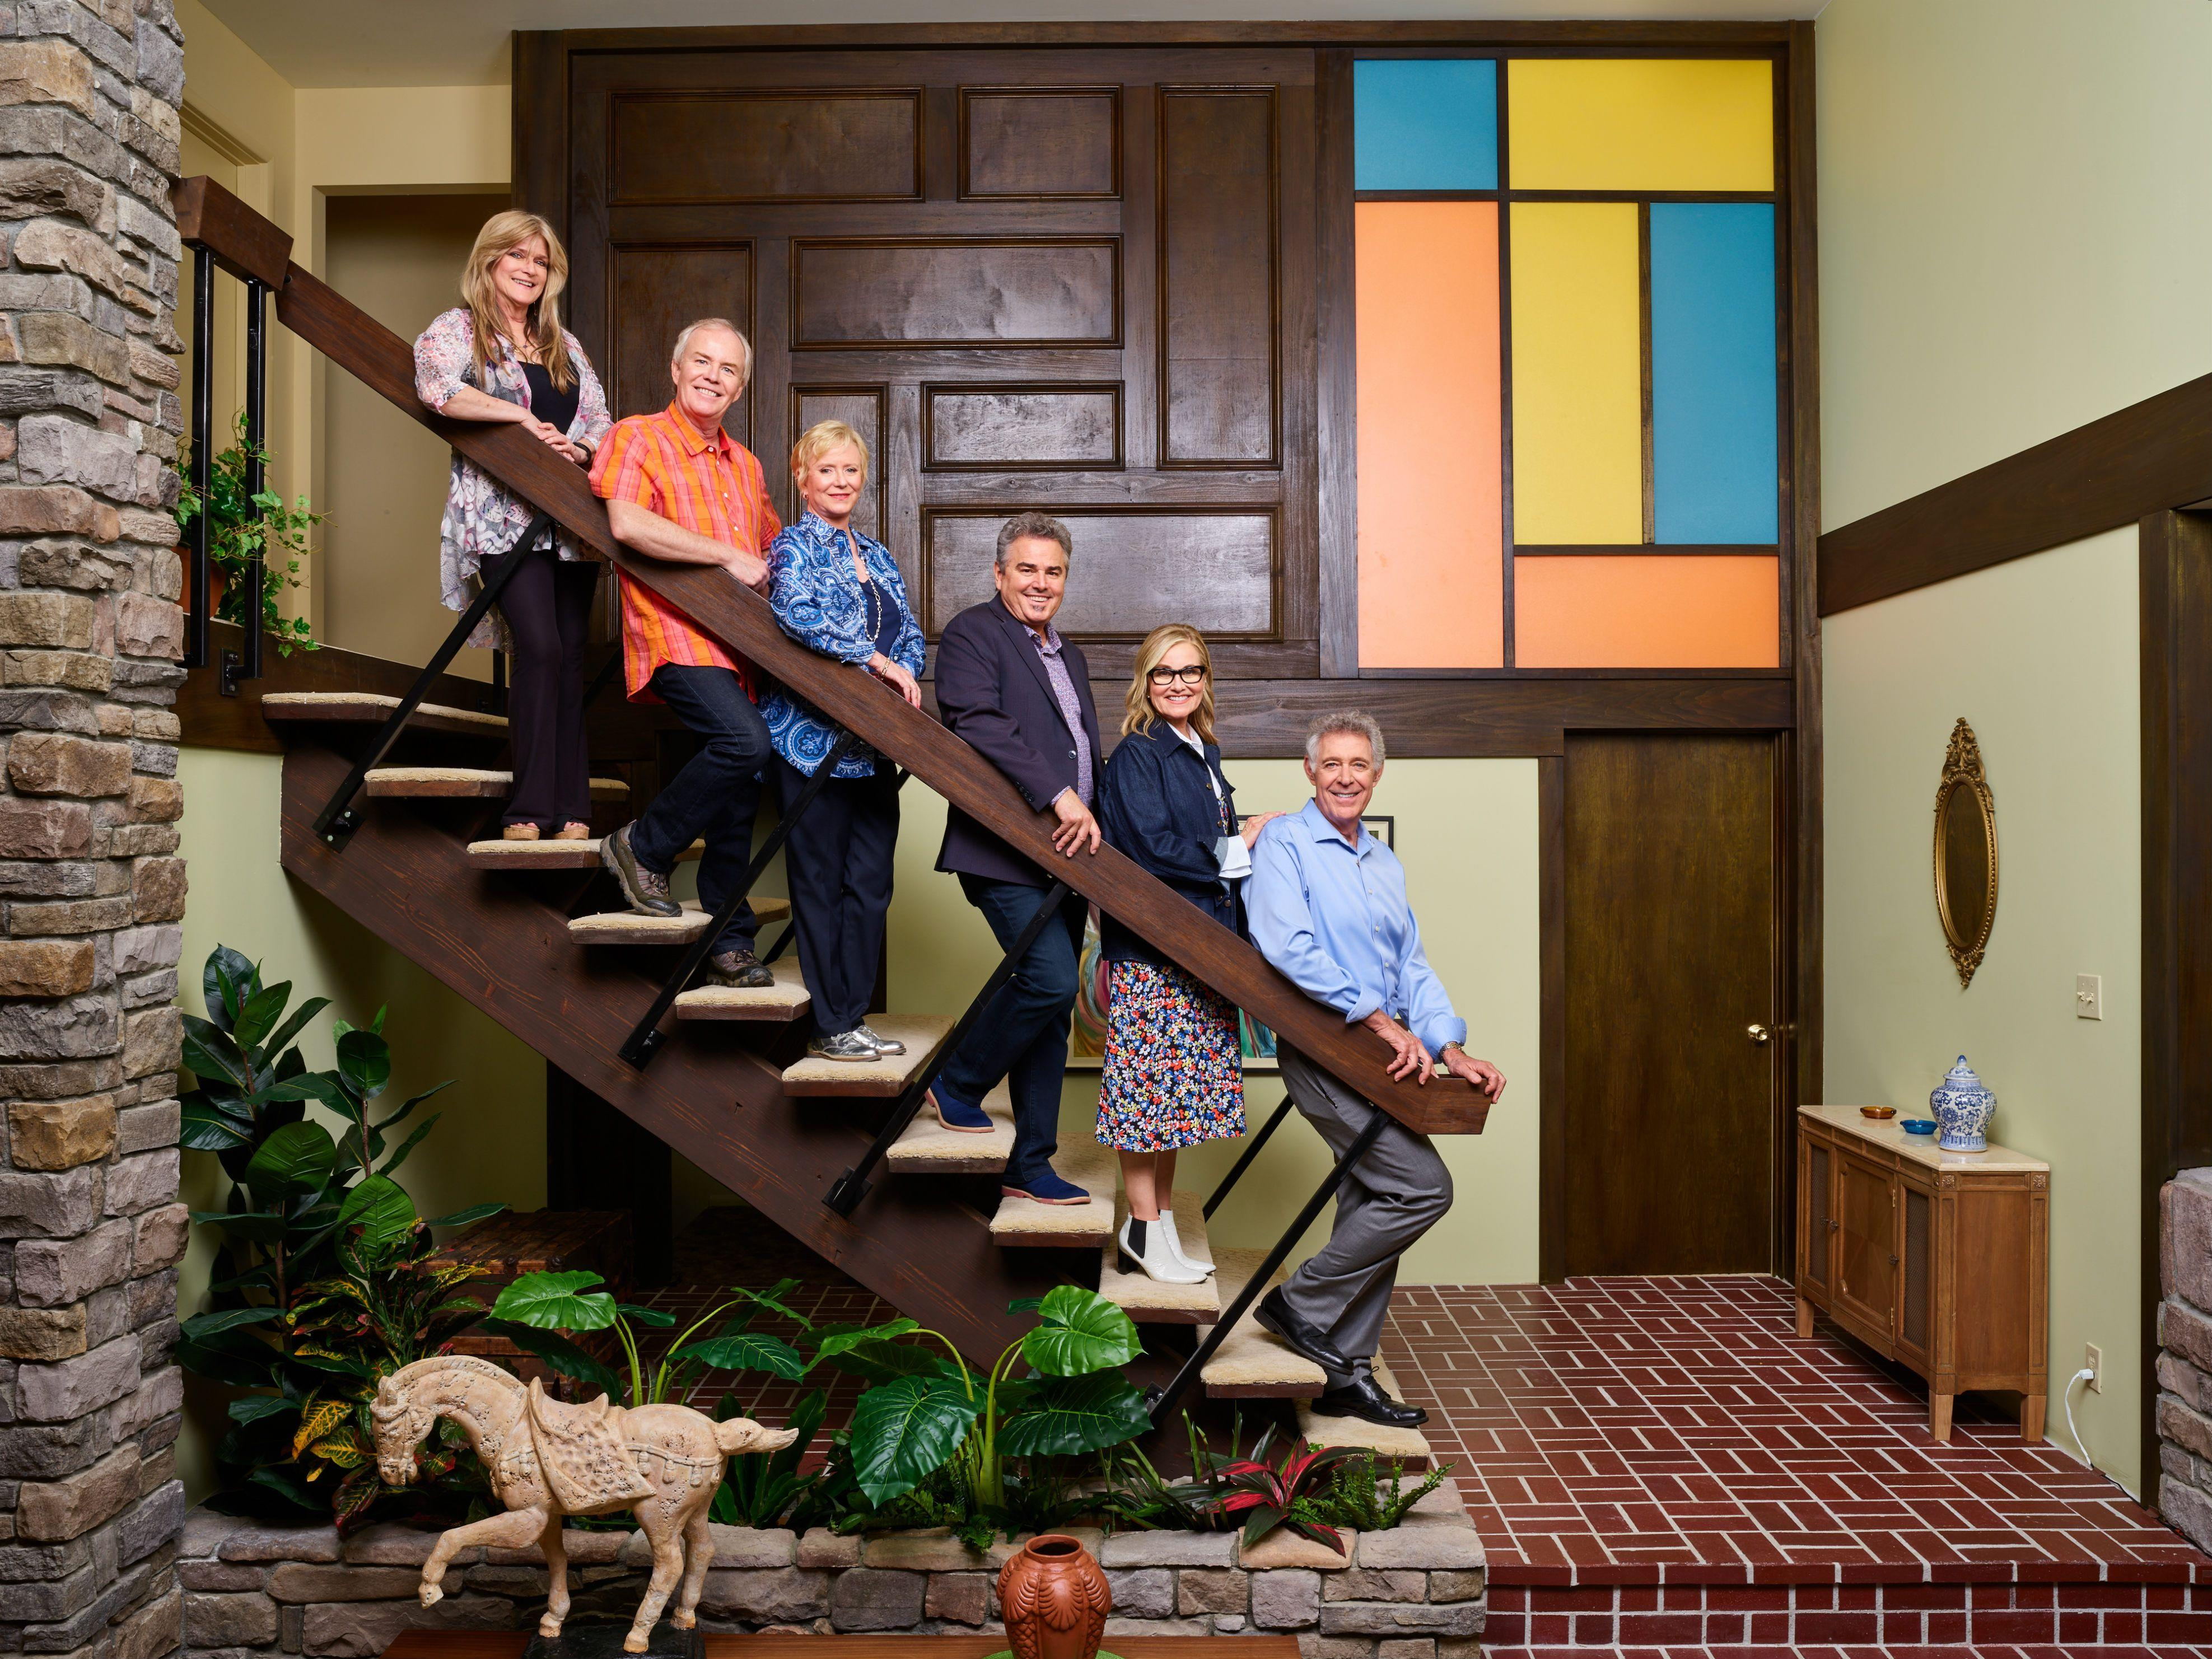 "<p>In the late '60s and early '70s, <em><a href=""https://www.housebeautiful.com/lifestyle/a28945958/how-to-watch-the-brady-bunch/"" rel=""nofollow noopener"" target=""_blank"" data-ylk=""slk:The Brady Bunch"" class=""link rapid-noclick-resp"">The Brady Bunch</a></em> made viewers involuntarily hum its insanely catchy theme song, and nearly 50 years later, the iconic show has stirred up nostalgic feelings with HGTV's <em><a href=""https://www.housebeautiful.com/lifestyle/a28980612/hgtv-a-very-brady-renovation-episodes/"" rel=""nofollow noopener"" target=""_blank"" data-ylk=""slk:A Very Brady Renovation"" class=""link rapid-noclick-resp"">A Very Brady Renovation</a></em>. In August 2018, <a href=""https://www.housebeautiful.com/design-inspiration/real-estate/a22663583/hgtv-highest-bidder-brady-bunch-house/"" rel=""nofollow noopener"" target=""_blank"" data-ylk=""slk:HGTV purchased the house"" class=""link rapid-noclick-resp"">HGTV purchased the house</a>—located at 11222 Dilling Street in Studio City, California through <a href=""https://www.elliman.com/california/11222-dilling-street-studio-city-qmsxabp"" rel=""nofollow noopener"" target=""_blank"" data-ylk=""slk:Douglas Elliman Real Estate"" class=""link rapid-noclick-resp"">Douglas Elliman Real Estate</a>—and fully transformed it into a replica of the original TV set that once stood at Paramount Studios.</p><p>And over a year later, on September 9, 2019, <em><a href=""https://www.housebeautiful.com/lifestyle/a28945208/how-to-watch-a-very-brady-renovation-hgtv/"" rel=""nofollow noopener"" target=""_blank"" data-ylk=""slk:A Very Brady Renovation"" class=""link rapid-noclick-resp"">A Very Brady Renovation</a></em> officially premiered on HGTV, bringing in a whopping 8.1 million viewers for its <a href=""https://www.housebeautiful.com/lifestyle/a28945230/hgtv-brady-bunch-house-episode-1-premiere-recap/"" rel=""nofollow noopener"" target=""_blank"" data-ylk=""slk:first episode"" class=""link rapid-noclick-resp"">first episode</a>—an all-time record for the network. Each week, the limited TV series focuses on different spaces within <em>The Brady Bunch</em> house, worked on by a different combination of <a href=""https://www.housebeautiful.com/lifestyle/g28945235/a-very-brady-renovation-cast-hgtv/"" rel=""nofollow noopener"" target=""_blank"" data-ylk=""slk:Brady kids and HGTV stars"" class=""link rapid-noclick-resp"">Brady kids and HGTV stars</a>—culminating to incredible reveals. By the final episode, HGTV viewers will see the entire house unveiled with all its '70s charm.</p><p>From the <a href=""https://www.housebeautiful.com/design-inspiration/real-estate/a28521853/the-brady-bunch-house-hgtv-barry-williams/"" rel=""nofollow noopener"" target=""_blank"" data-ylk=""slk:home's exterior"" class=""link rapid-noclick-resp"">home's exterior</a> to the grand entrance to the retro home decor, the limited TV series pays close attention to every single detail, with guidance from <a href=""https://www.housebeautiful.com/lifestyle/a28915004/a-very-brady-renovation-hgtv-the-property-brothers/"" rel=""nofollow noopener"" target=""_blank"" data-ylk=""slk:the Brady kids"" class=""link rapid-noclick-resp"">the Brady kids</a> who know the home better than anyone else. While you wait for the next episode of <em>A Very Brady Renovation</em>, check out some fun facts you may not have realized about the house—and the show itself.</p>"